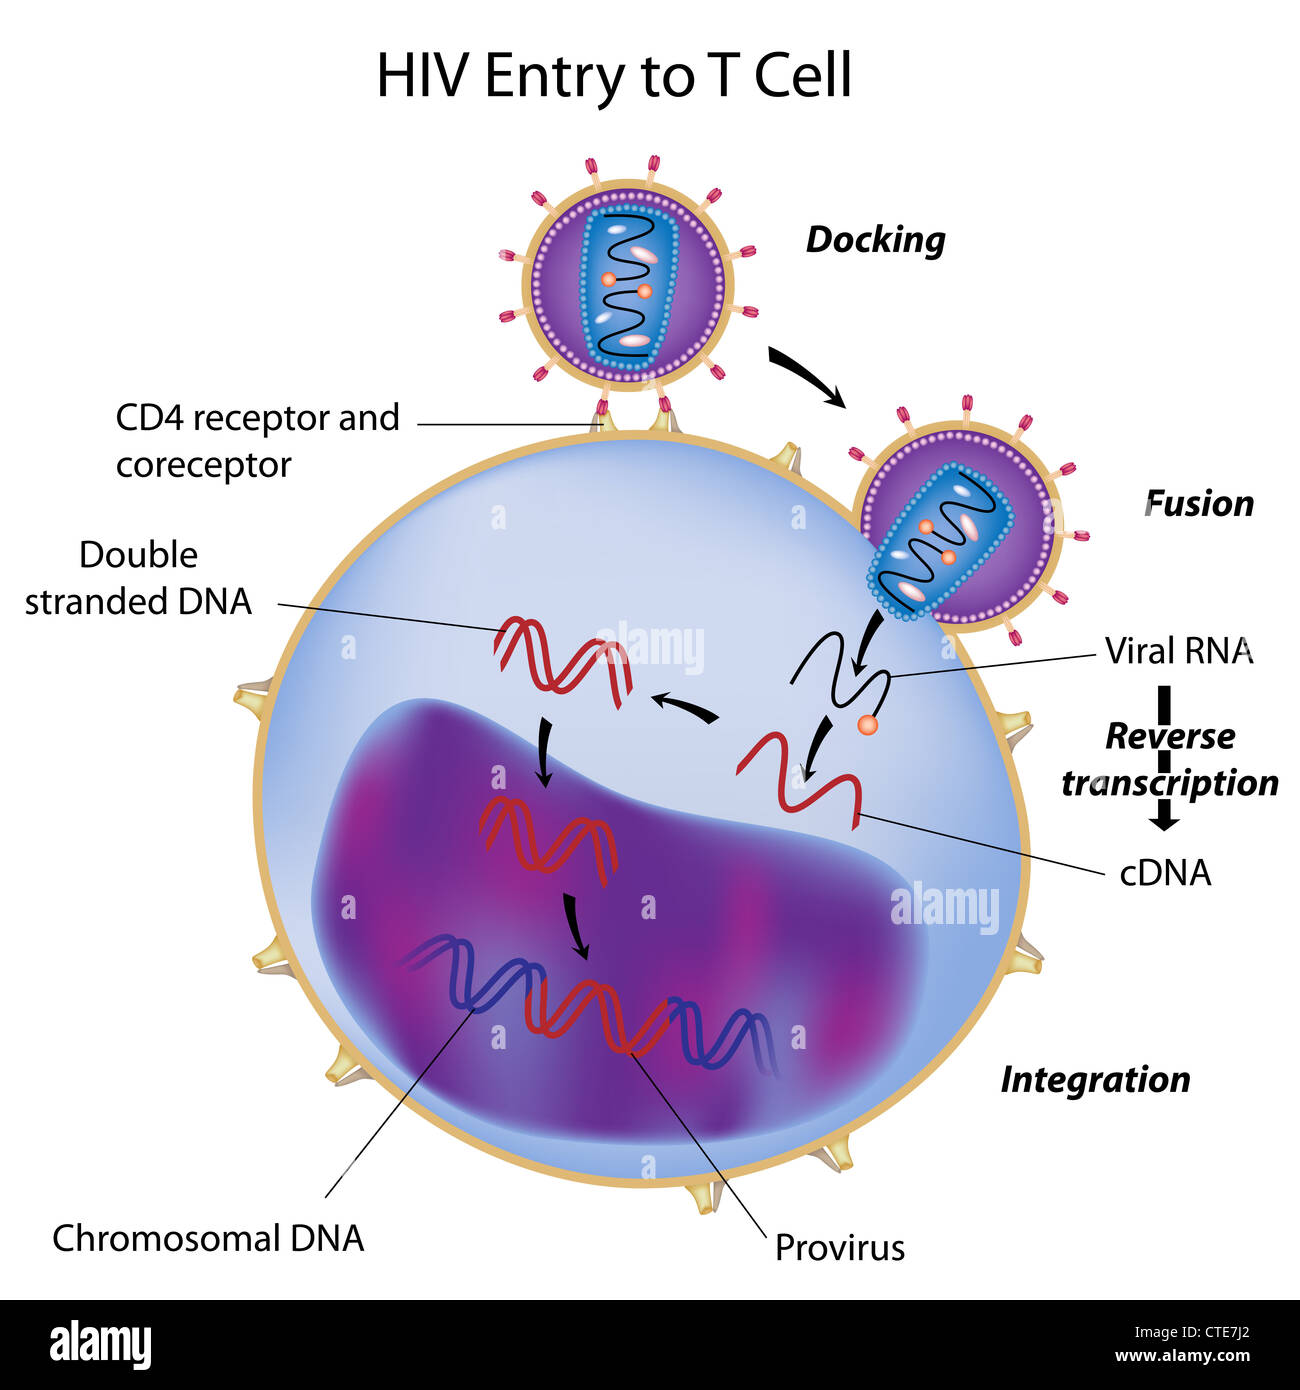 HIV entry to T cell - Stock Image